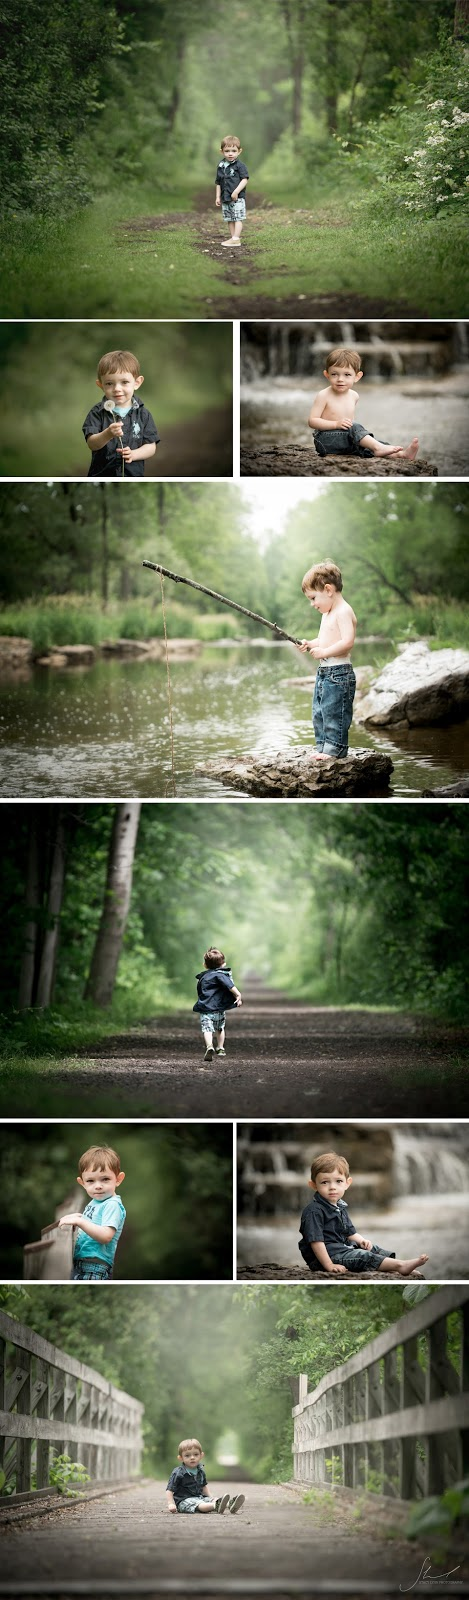 stacy lynn photography children ontario pathways pelps ny